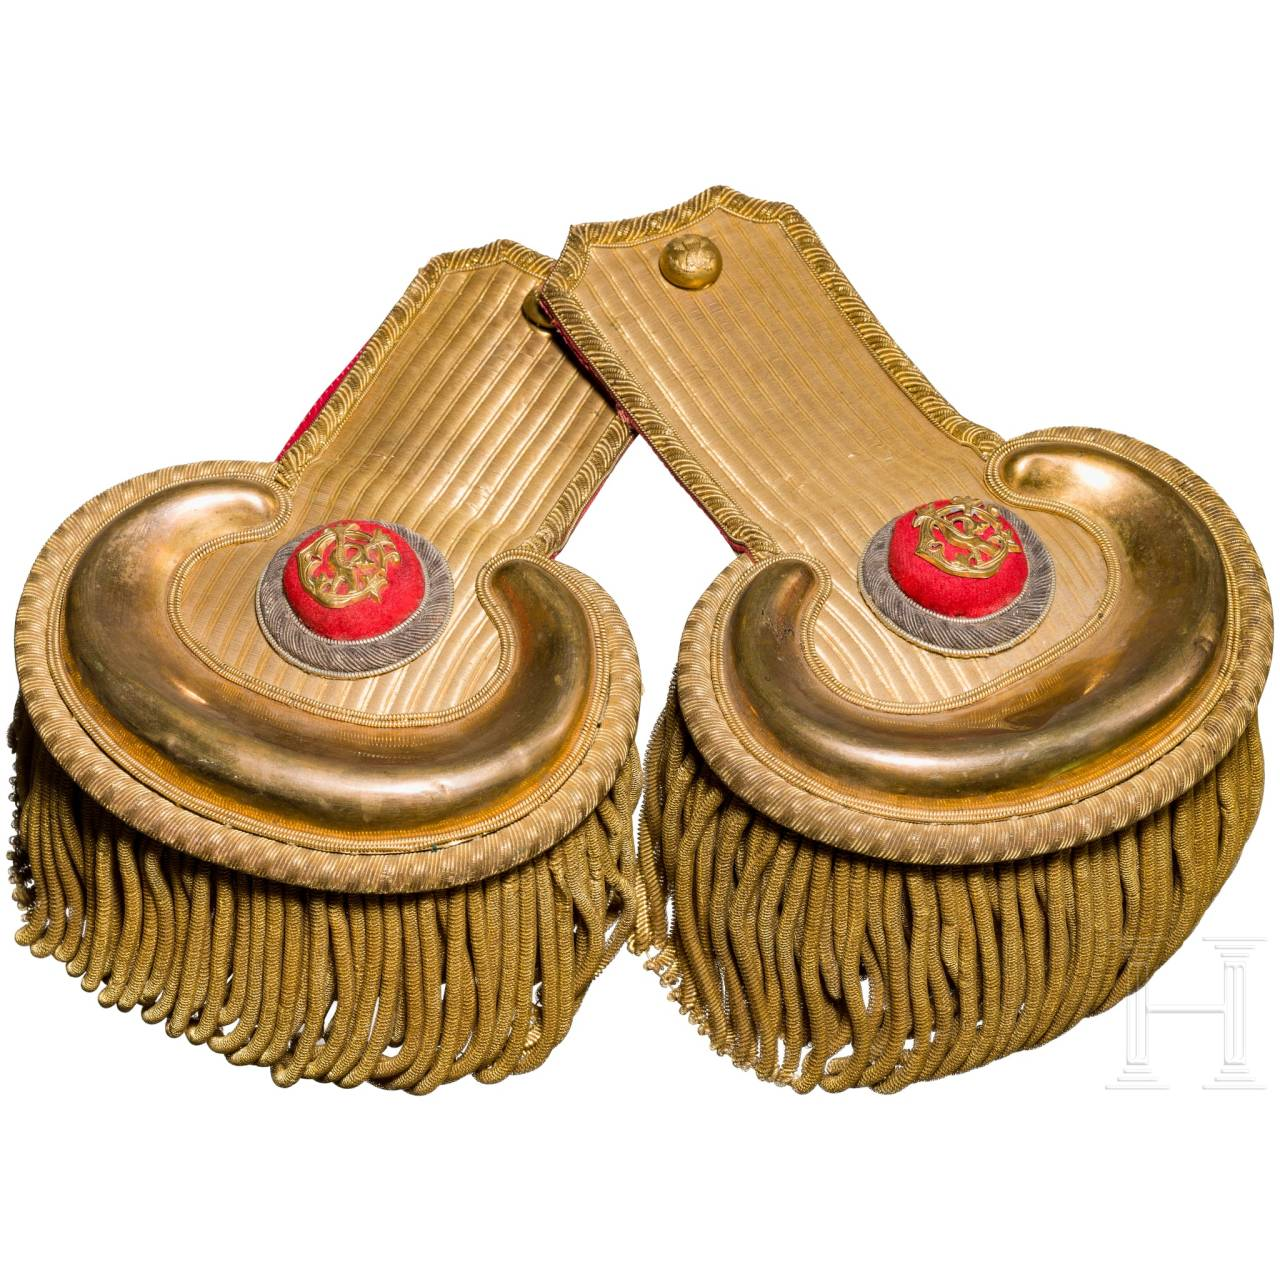 A pair of 19th century U.S. Army officer's epaulettes